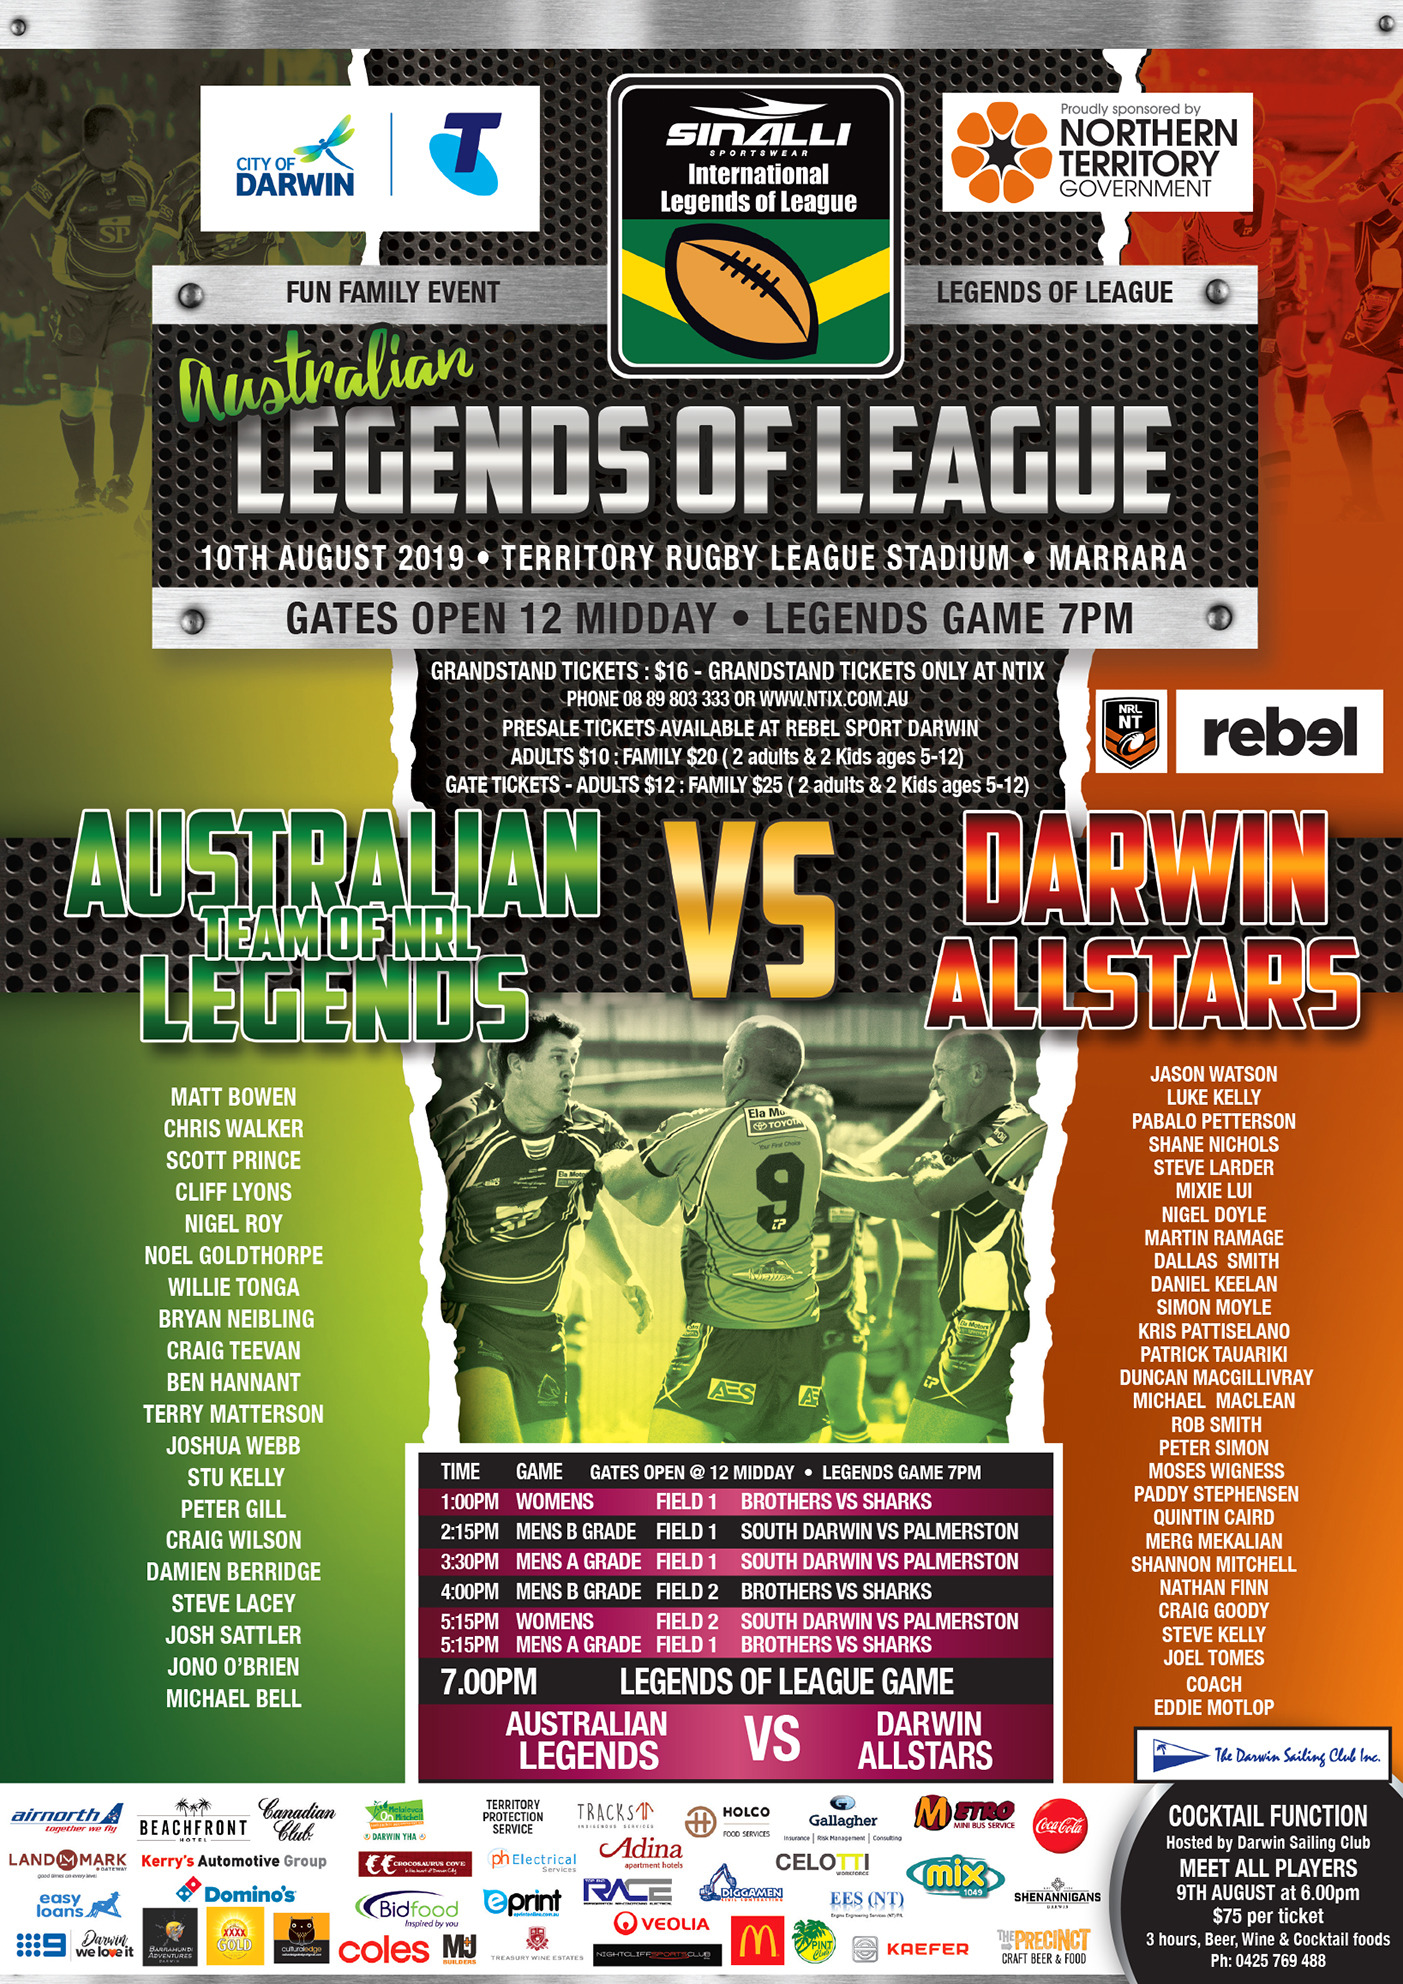 Legends of League Match in Style - Northern Territory Rugby